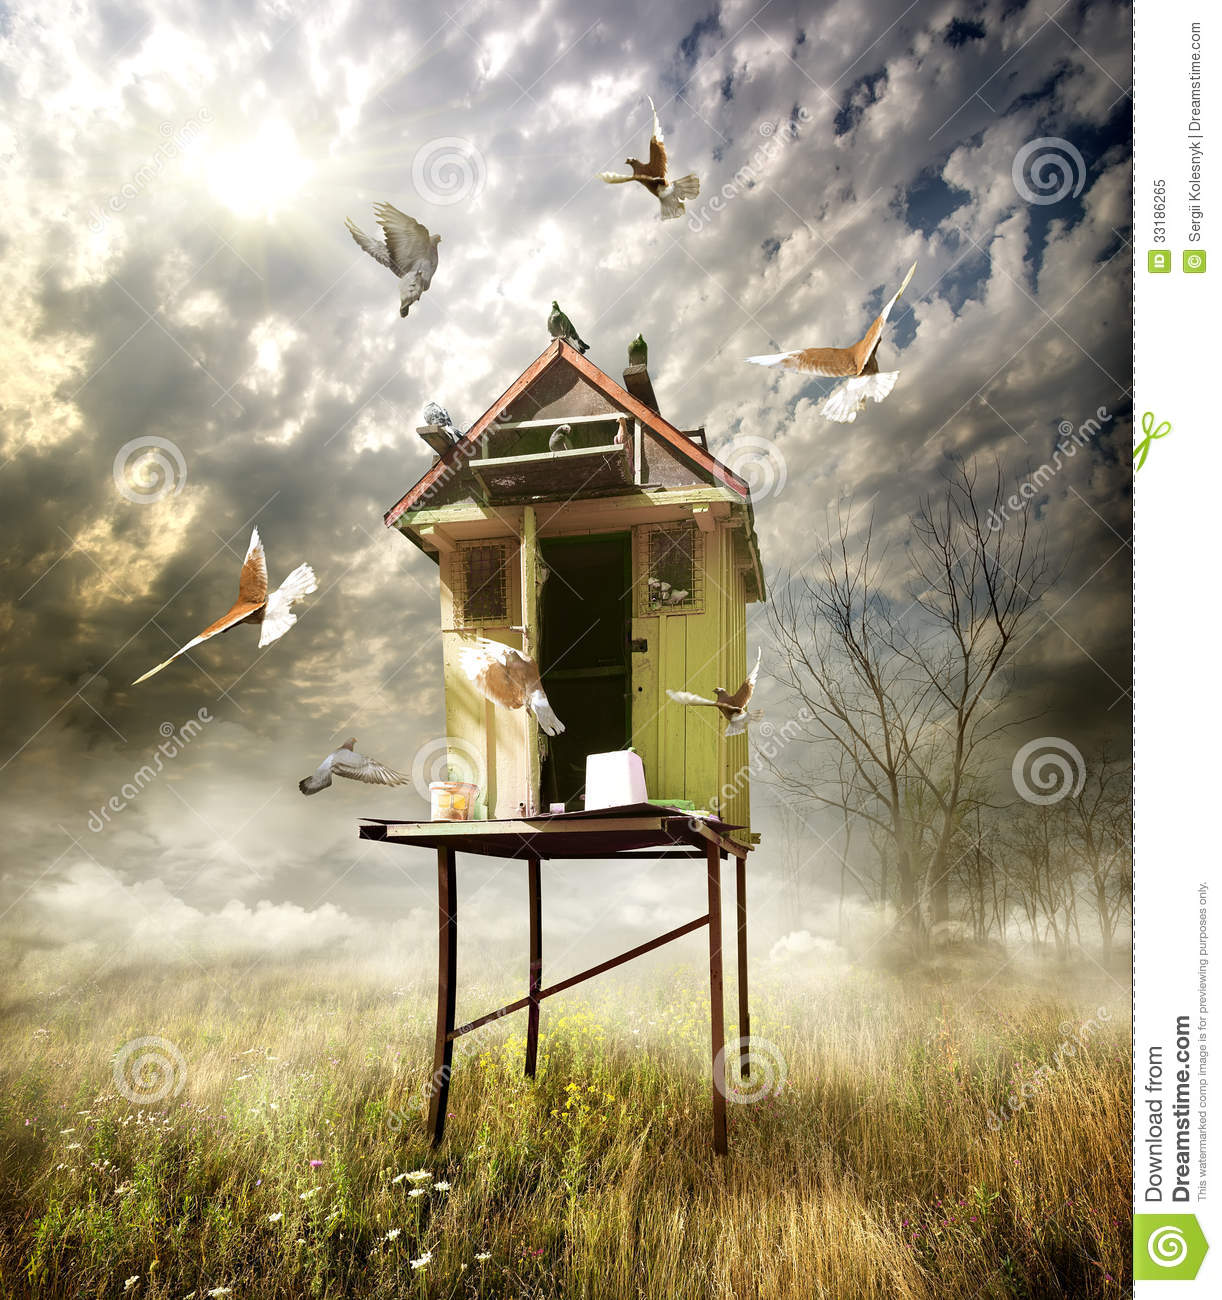 Wooden Dovecote Stock Image Image Of Home Flying Nature